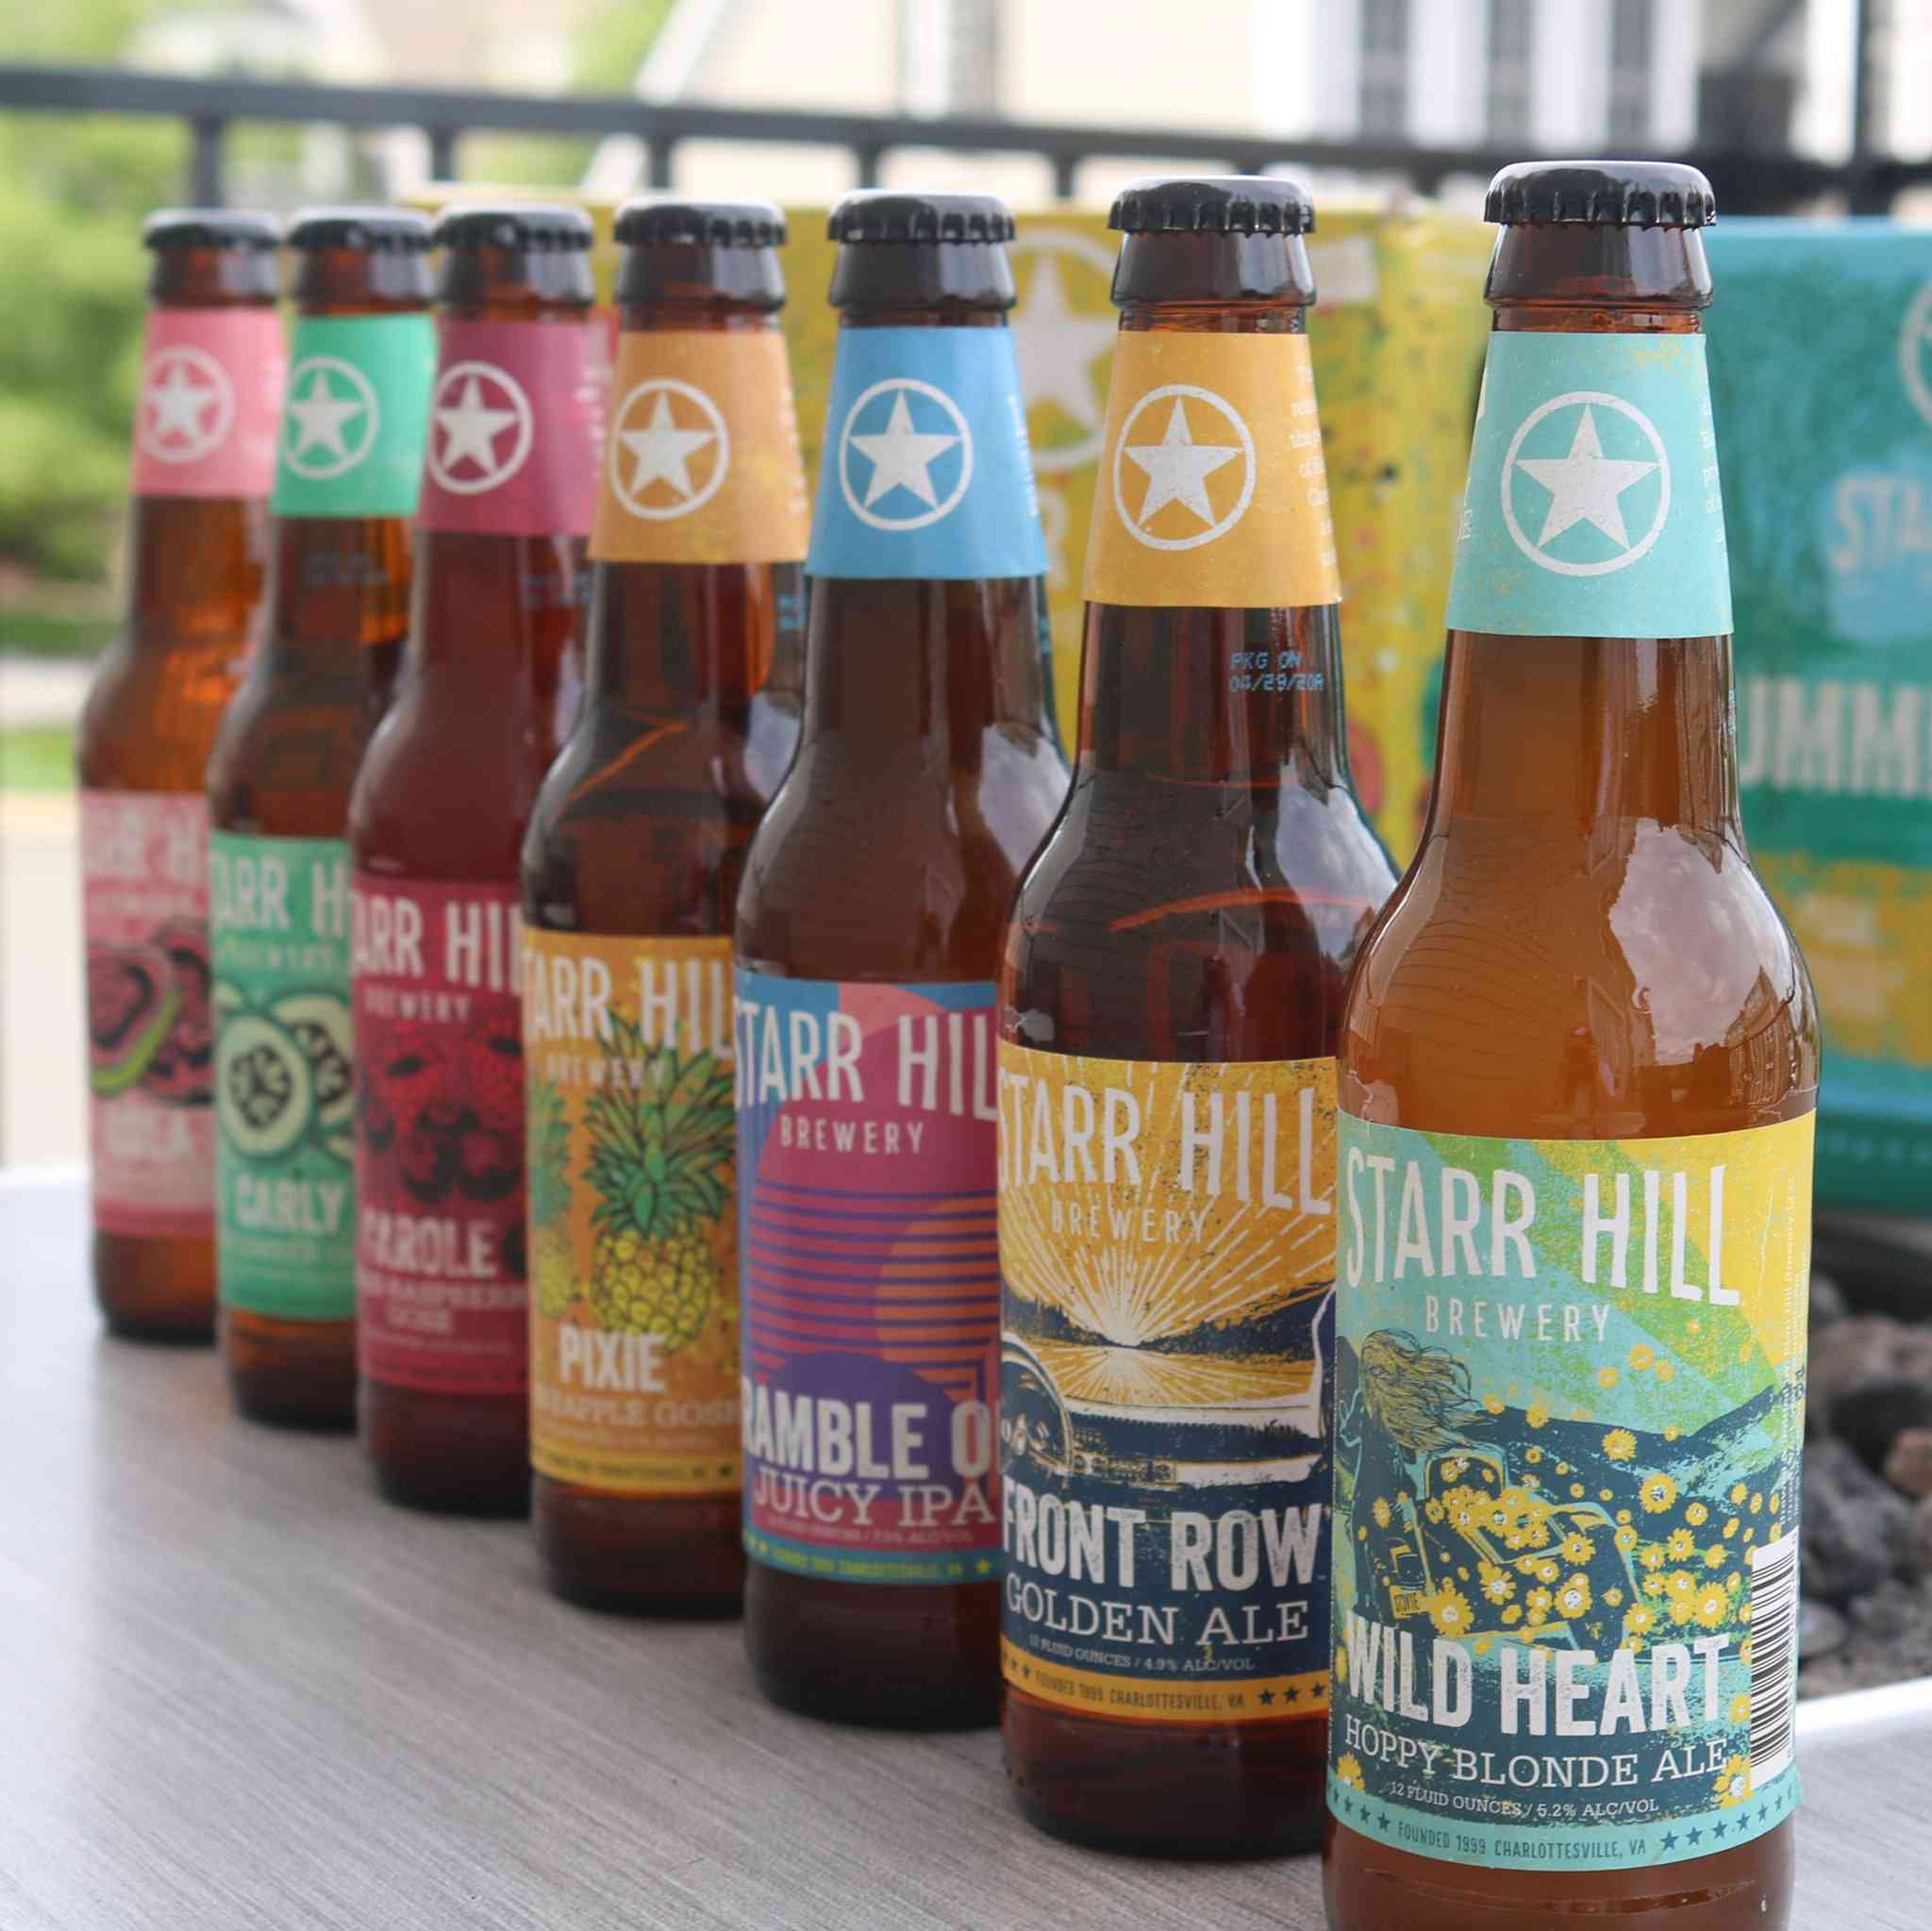 Several bottles from Starr Hill Brewery